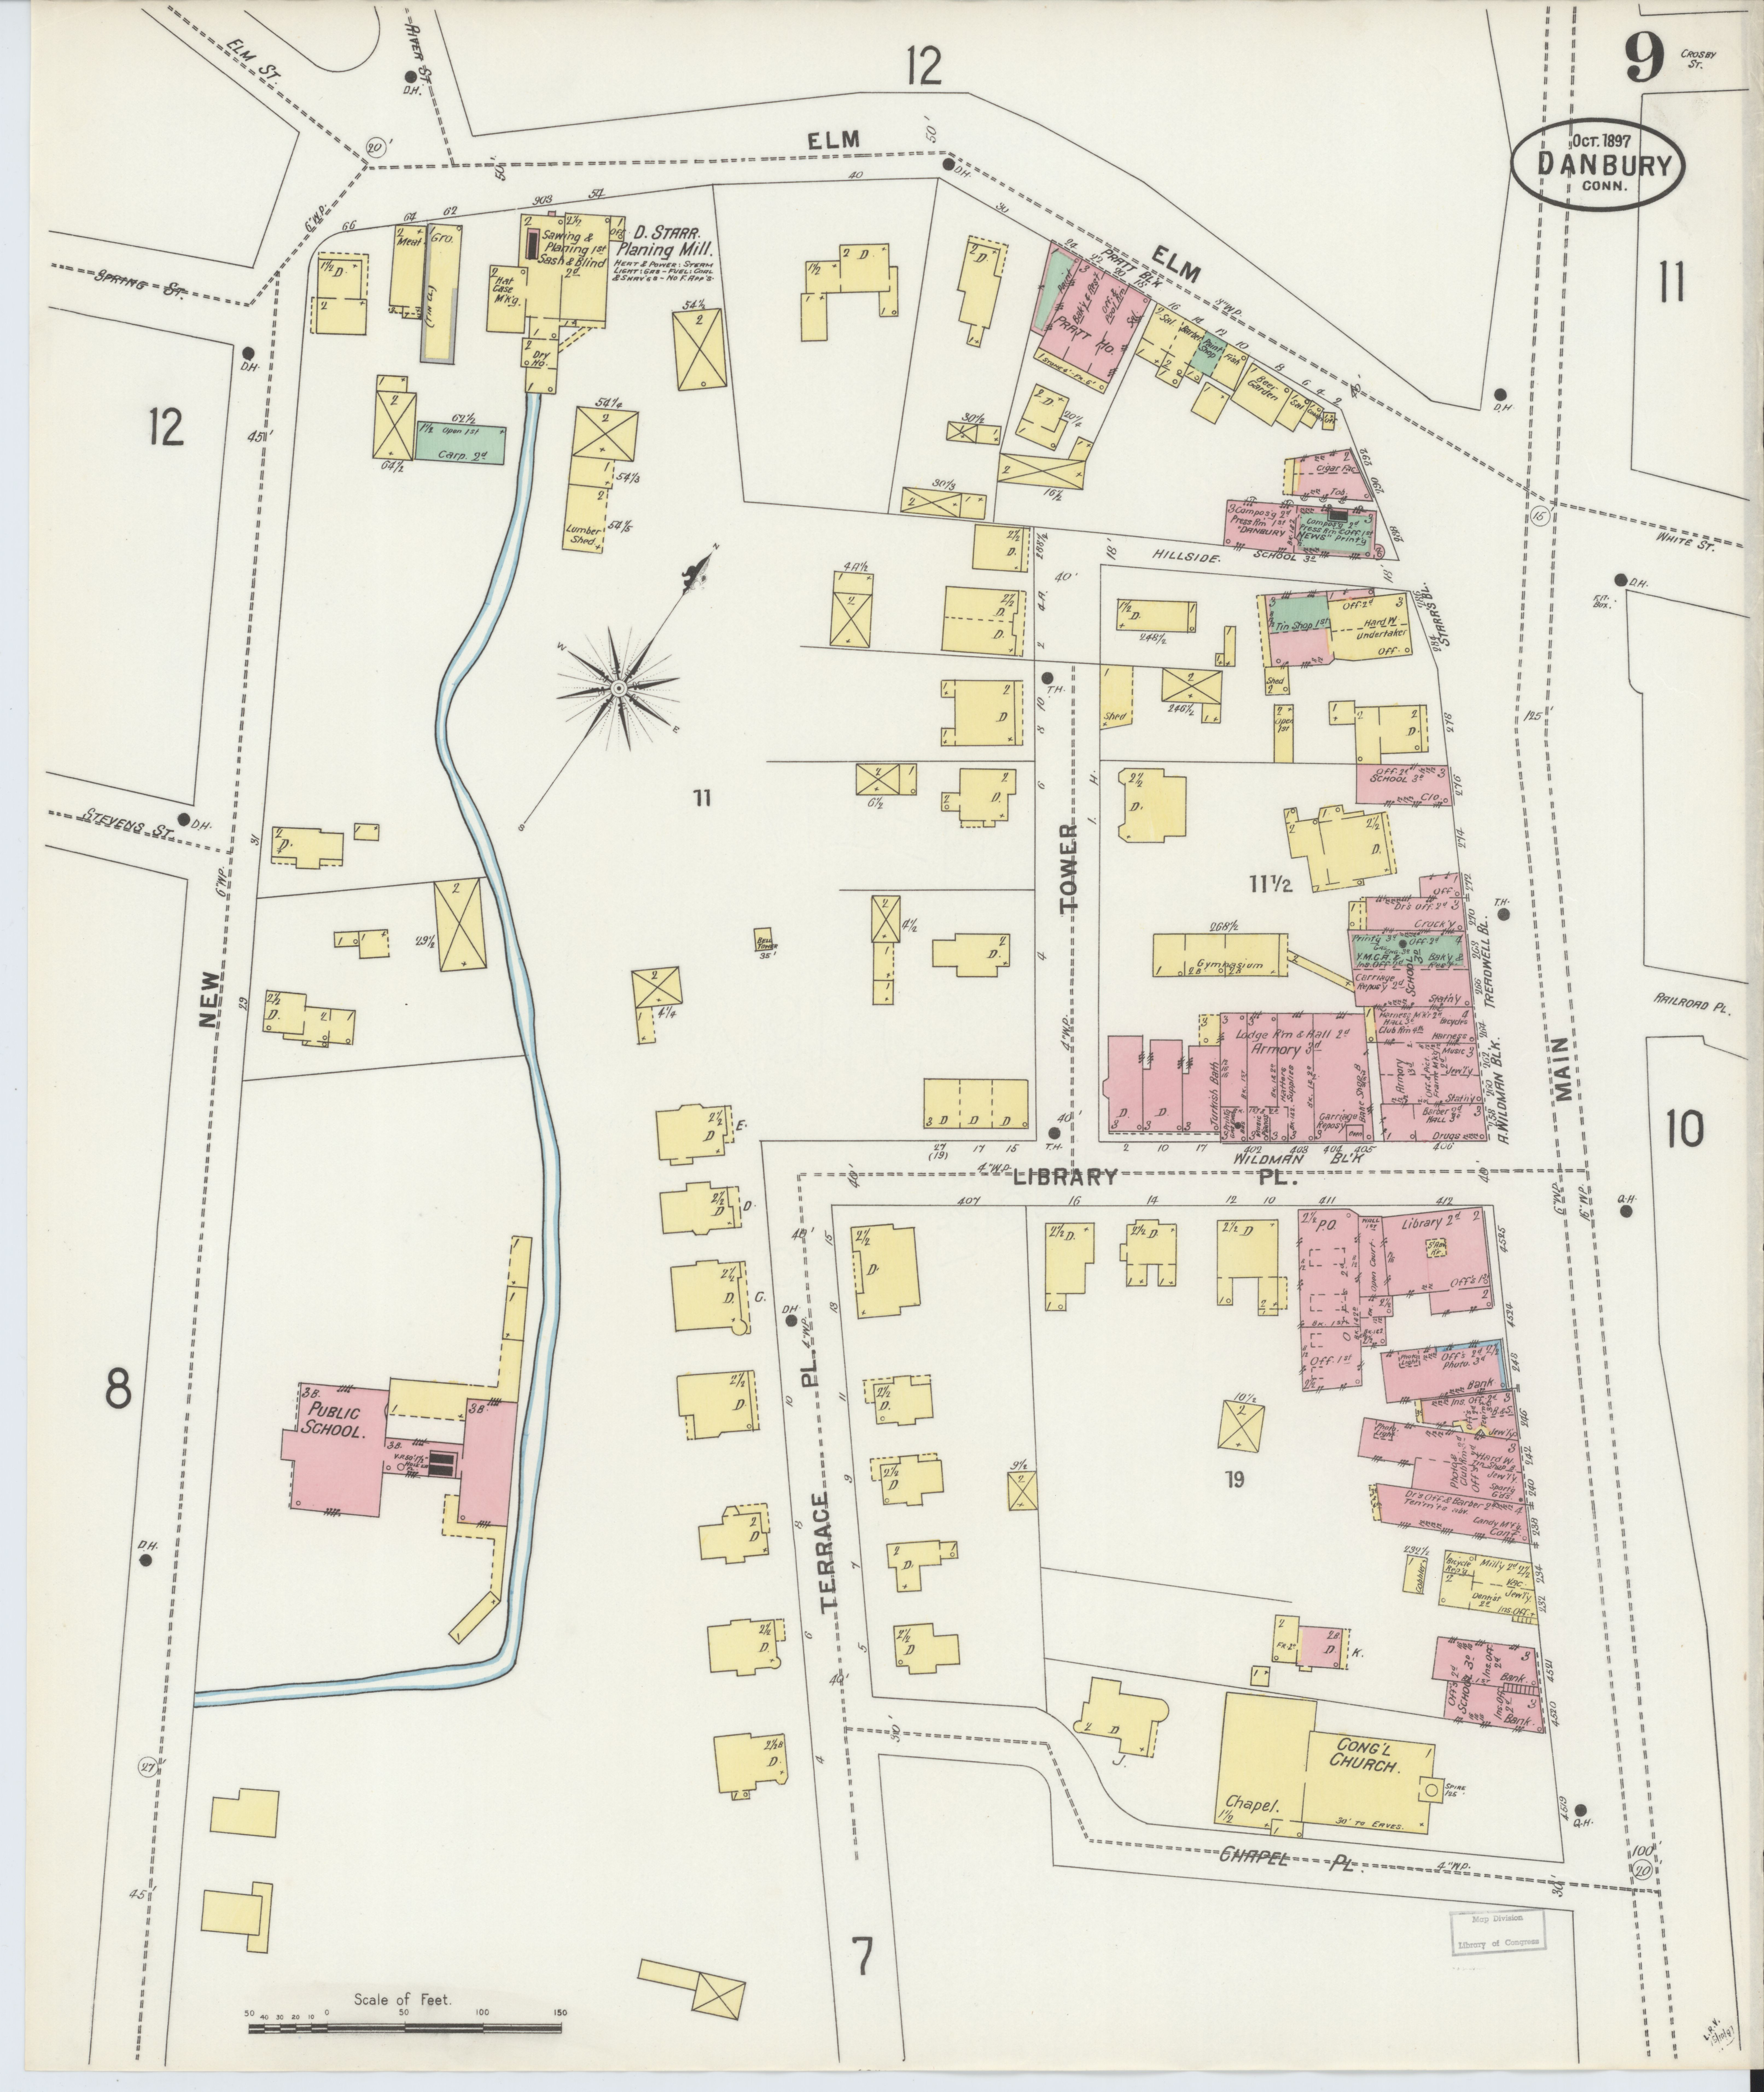 File:Sanborn Fire Insurance Map from Danbury, Fairfield County ... on